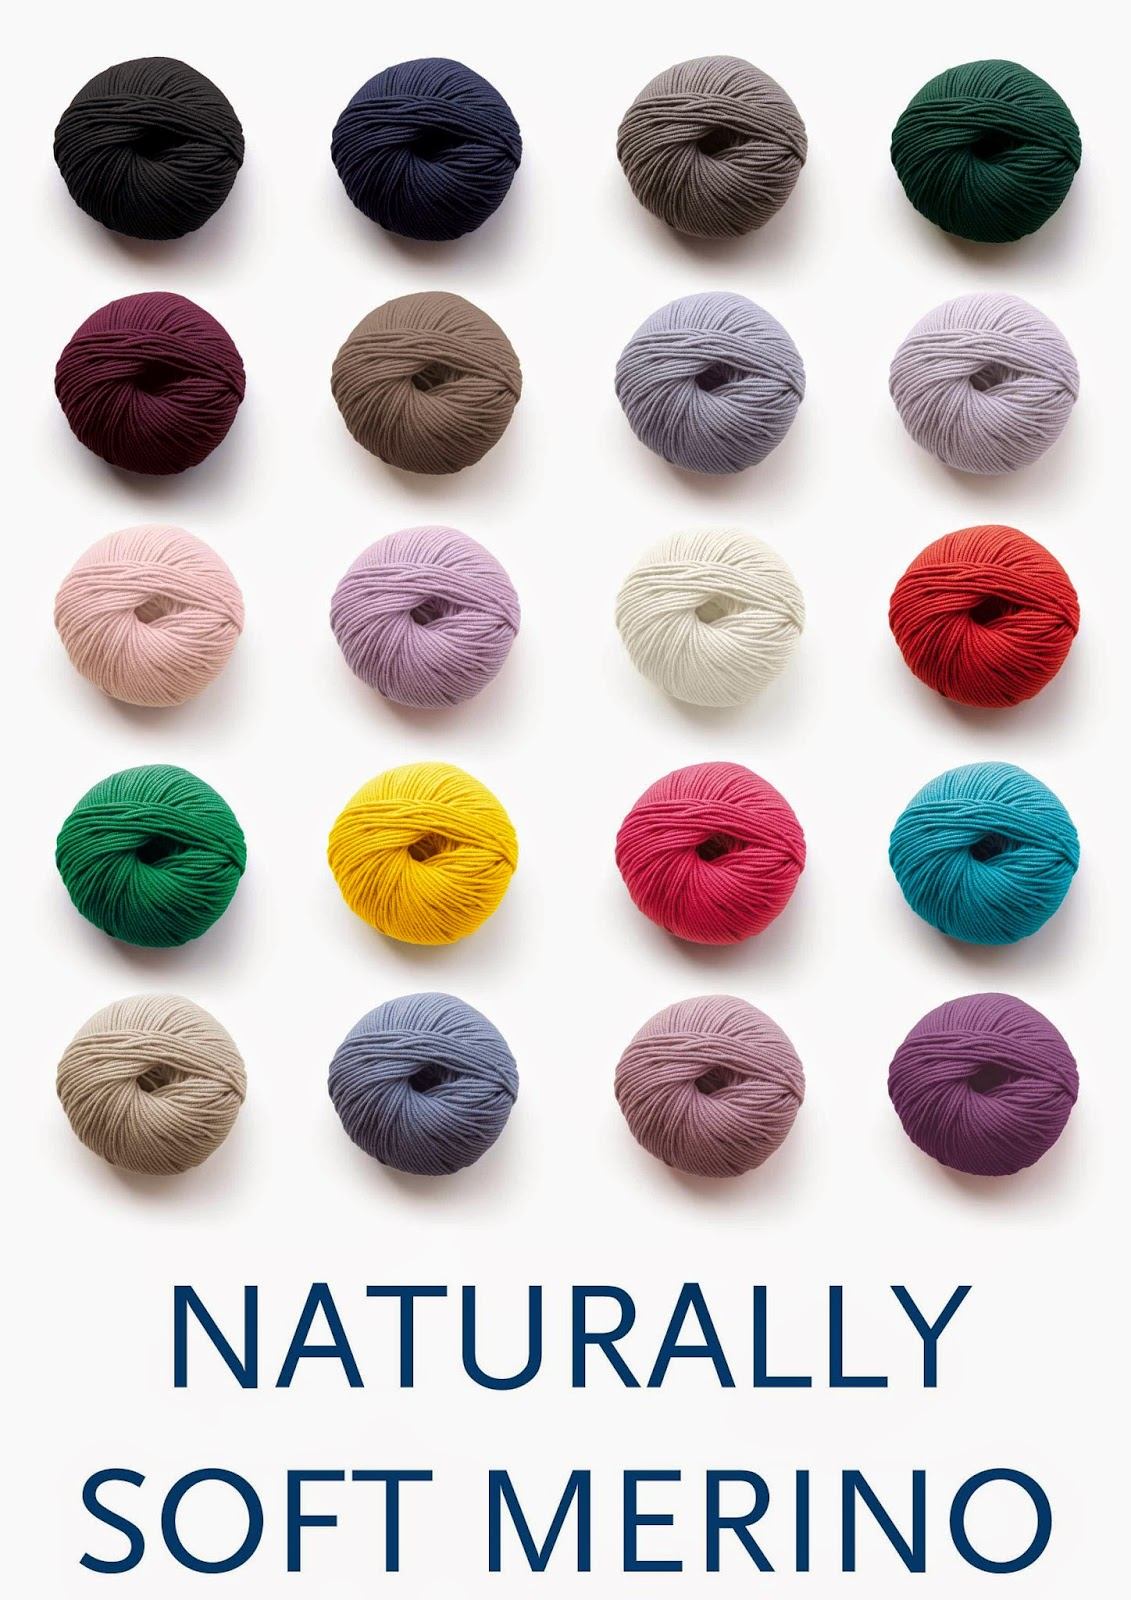 http://millamia.com/yarn.php?type=Merino&range=lights